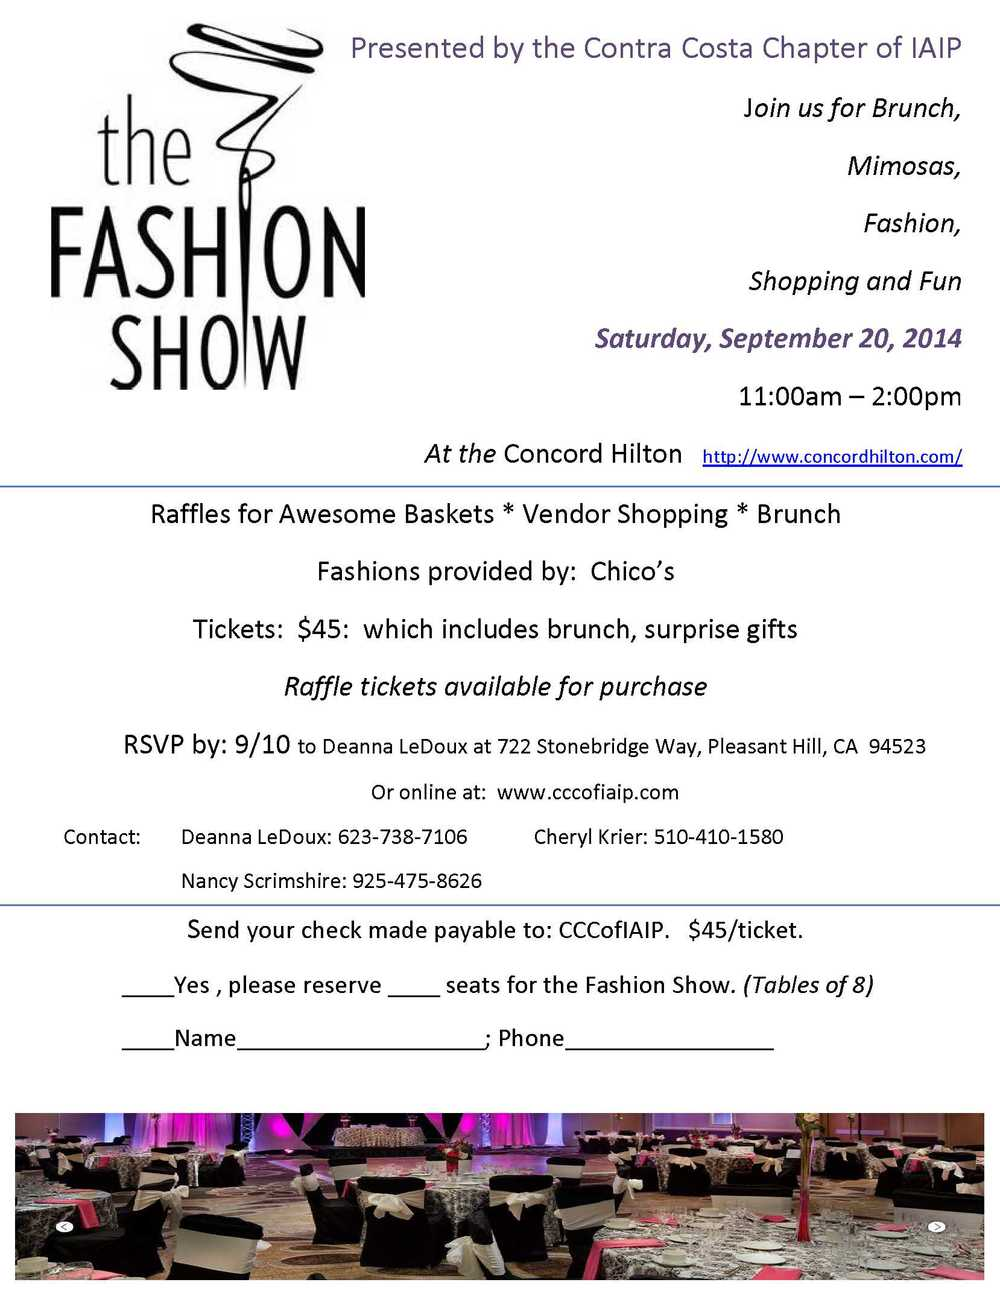 2014-009 CCCIAIP Fashion Show 9 20 14 Flyer.jpg